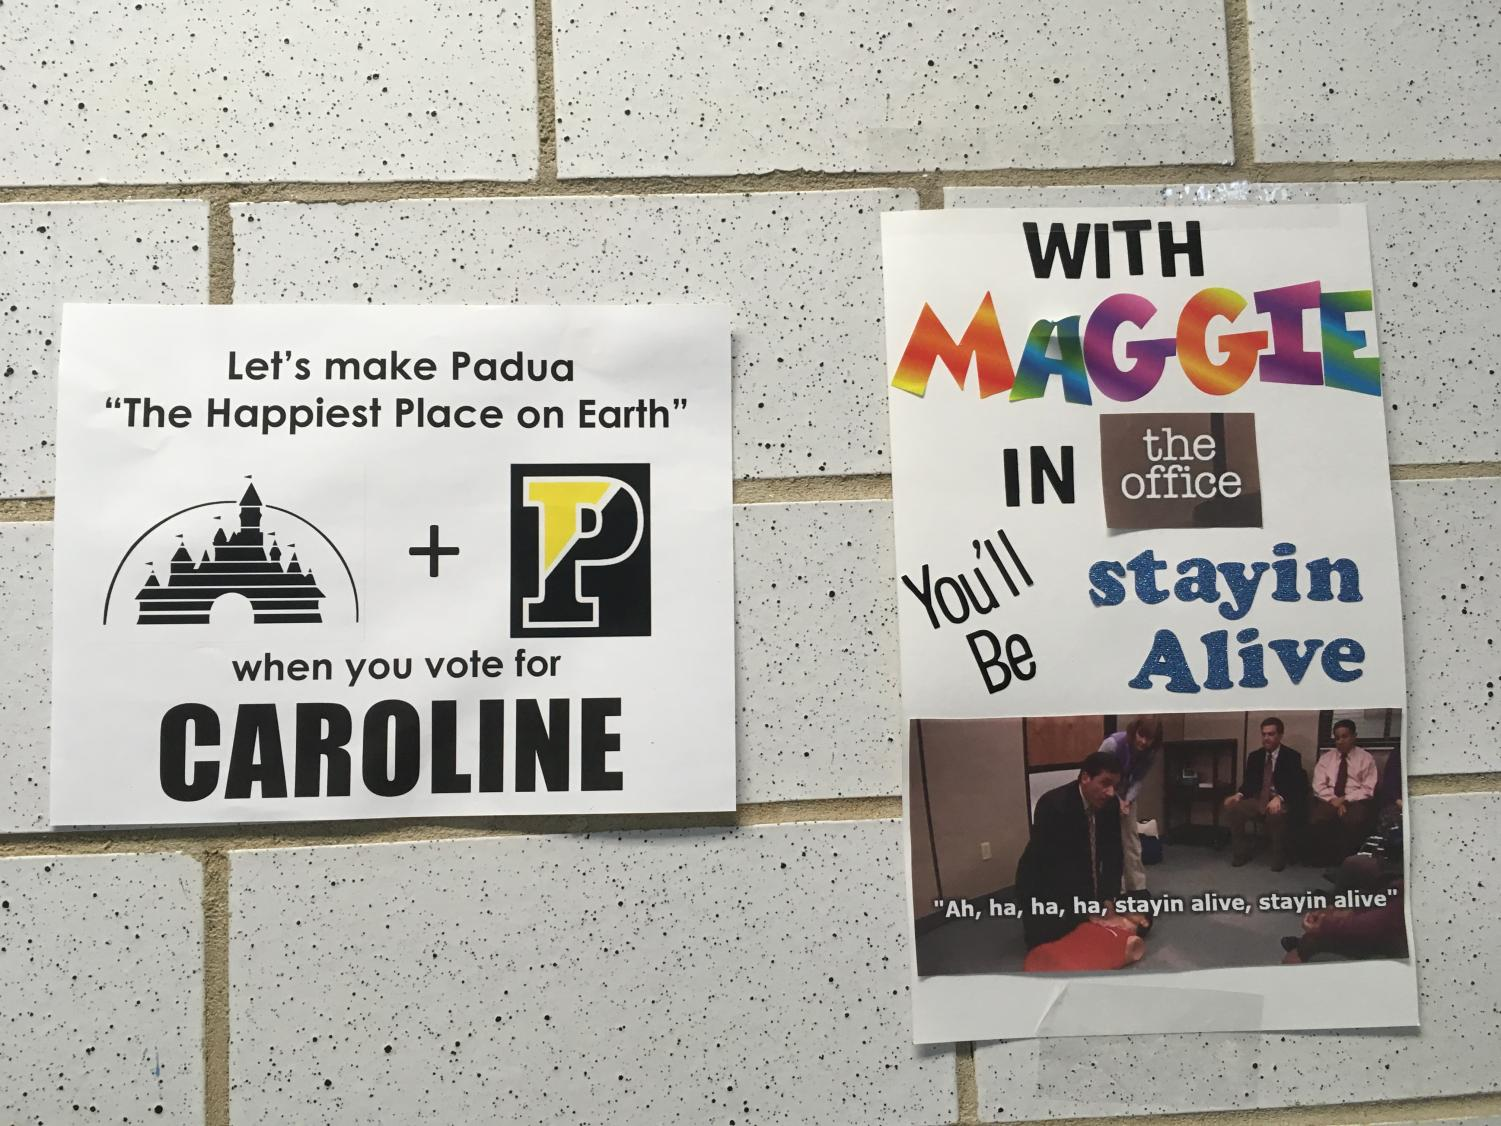 A large aspect of the campaign for Student Council Executive Officer is strategic placement of posters around school.